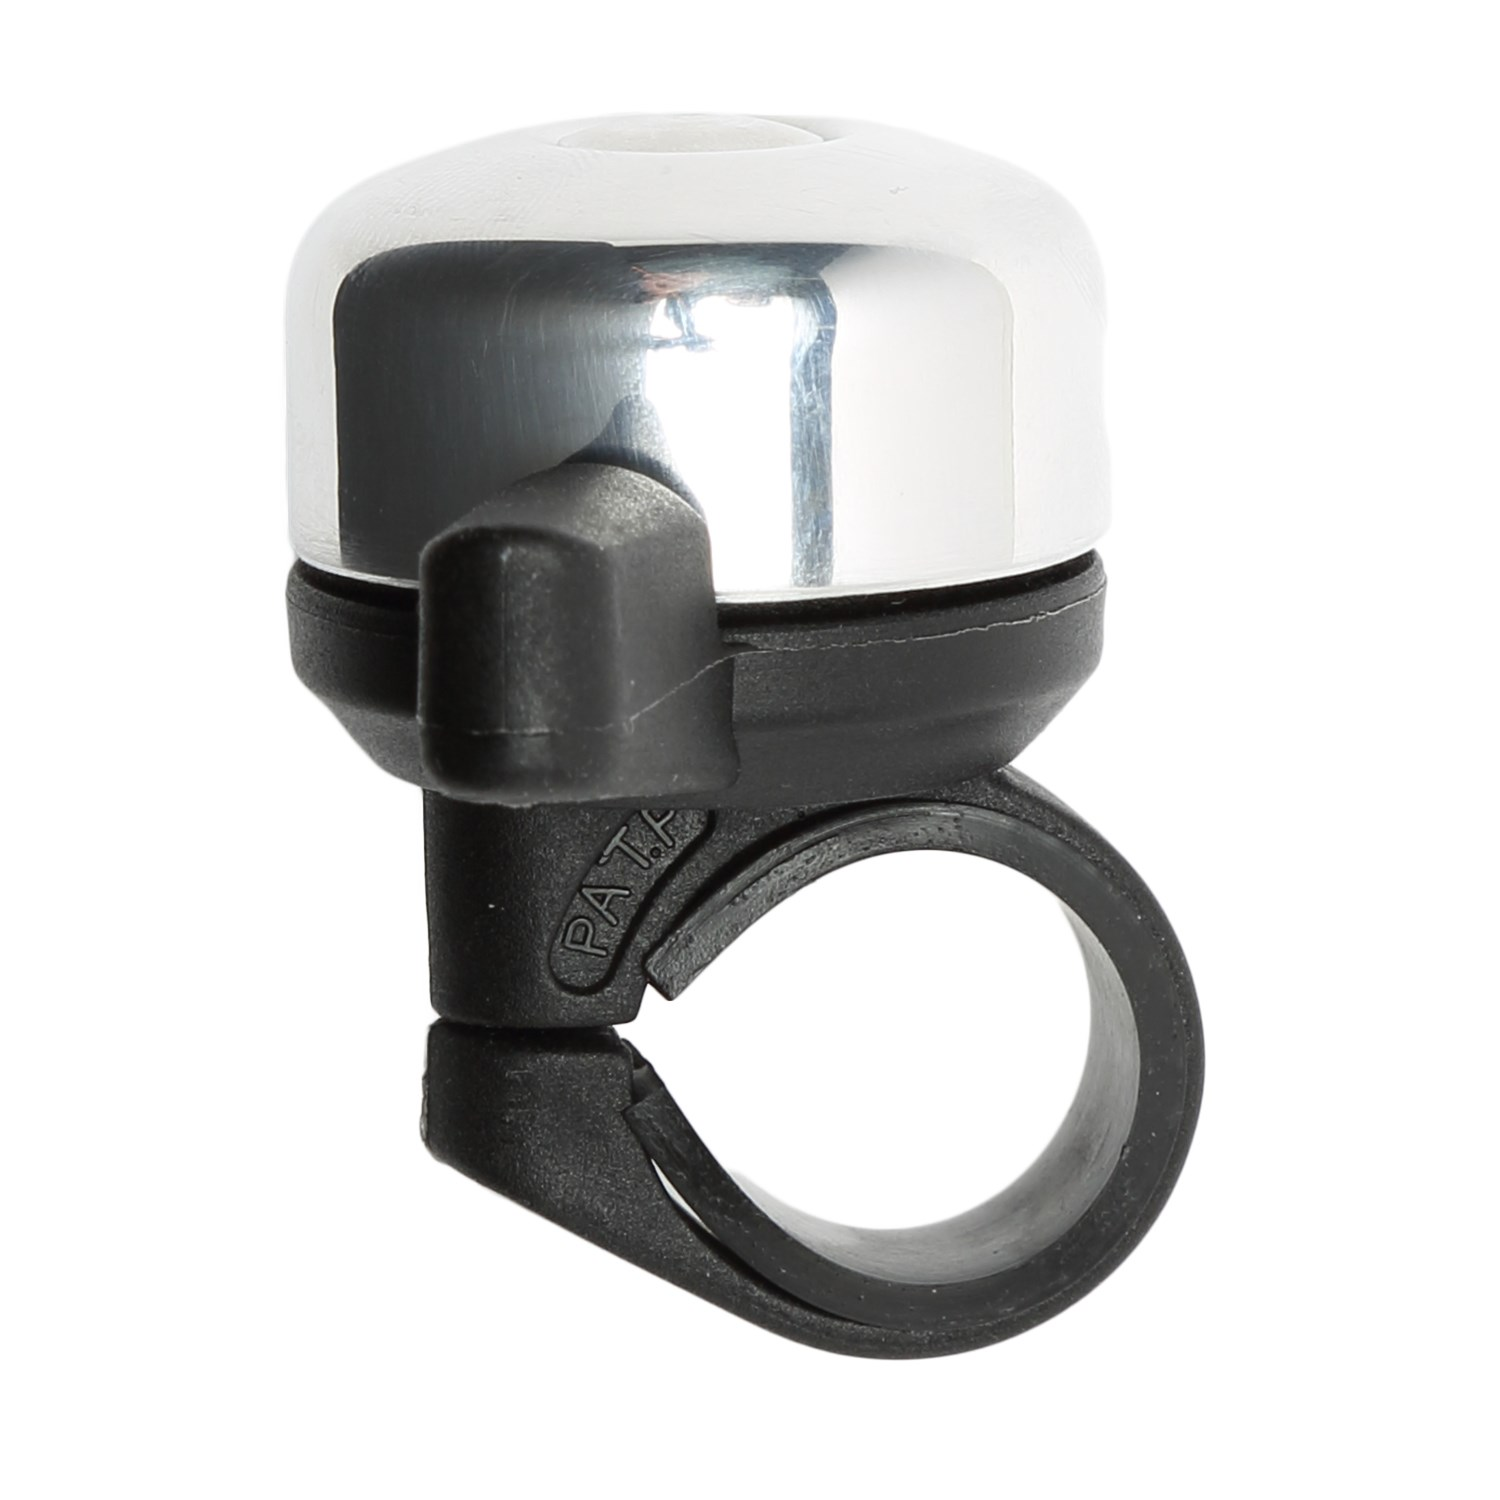 Incredibell Clever Lever Bell Black